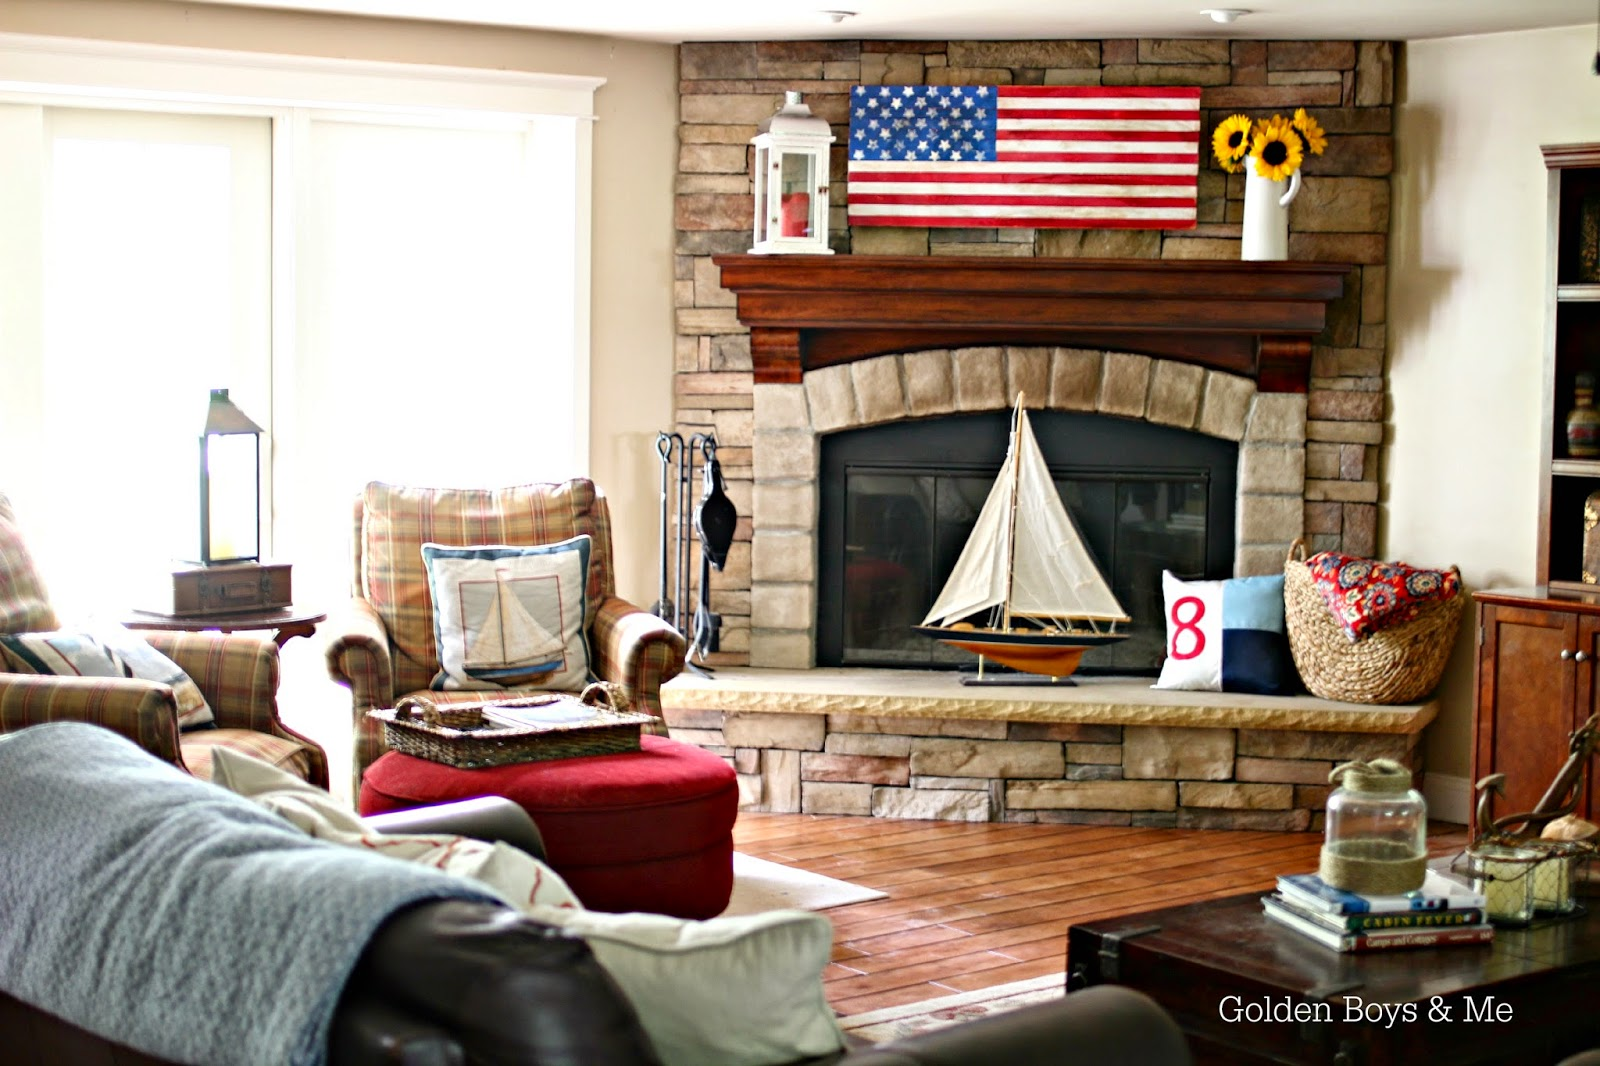 Stone fireplace with diy wood flag in Americana family room-www.goldenboysandme.com